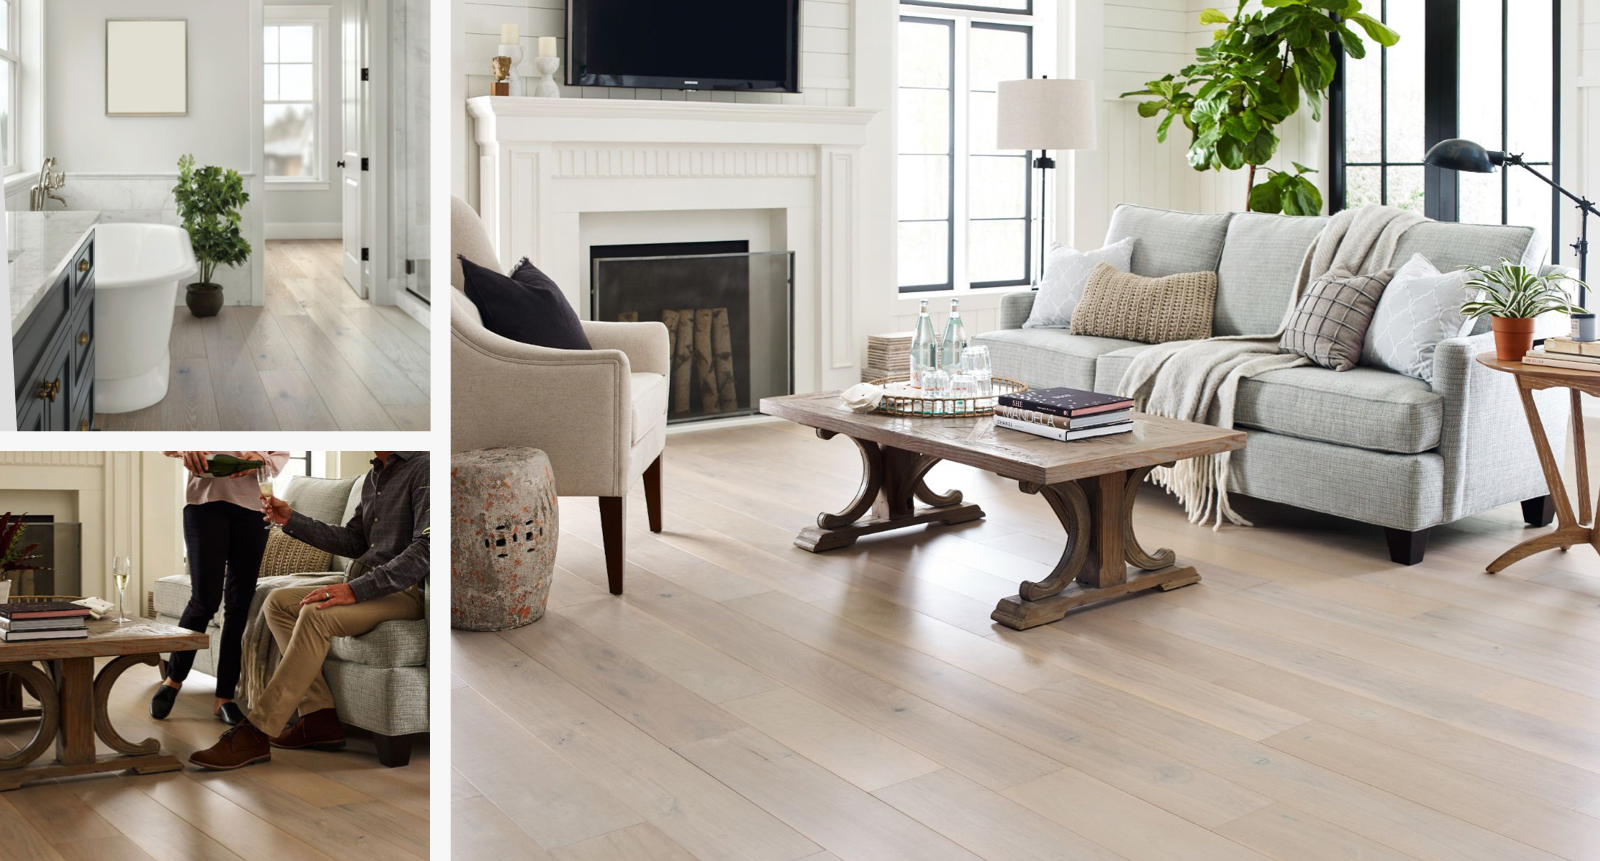 Floorte waterproof hardwood flooring for your home | Brandt Carpet and Tile